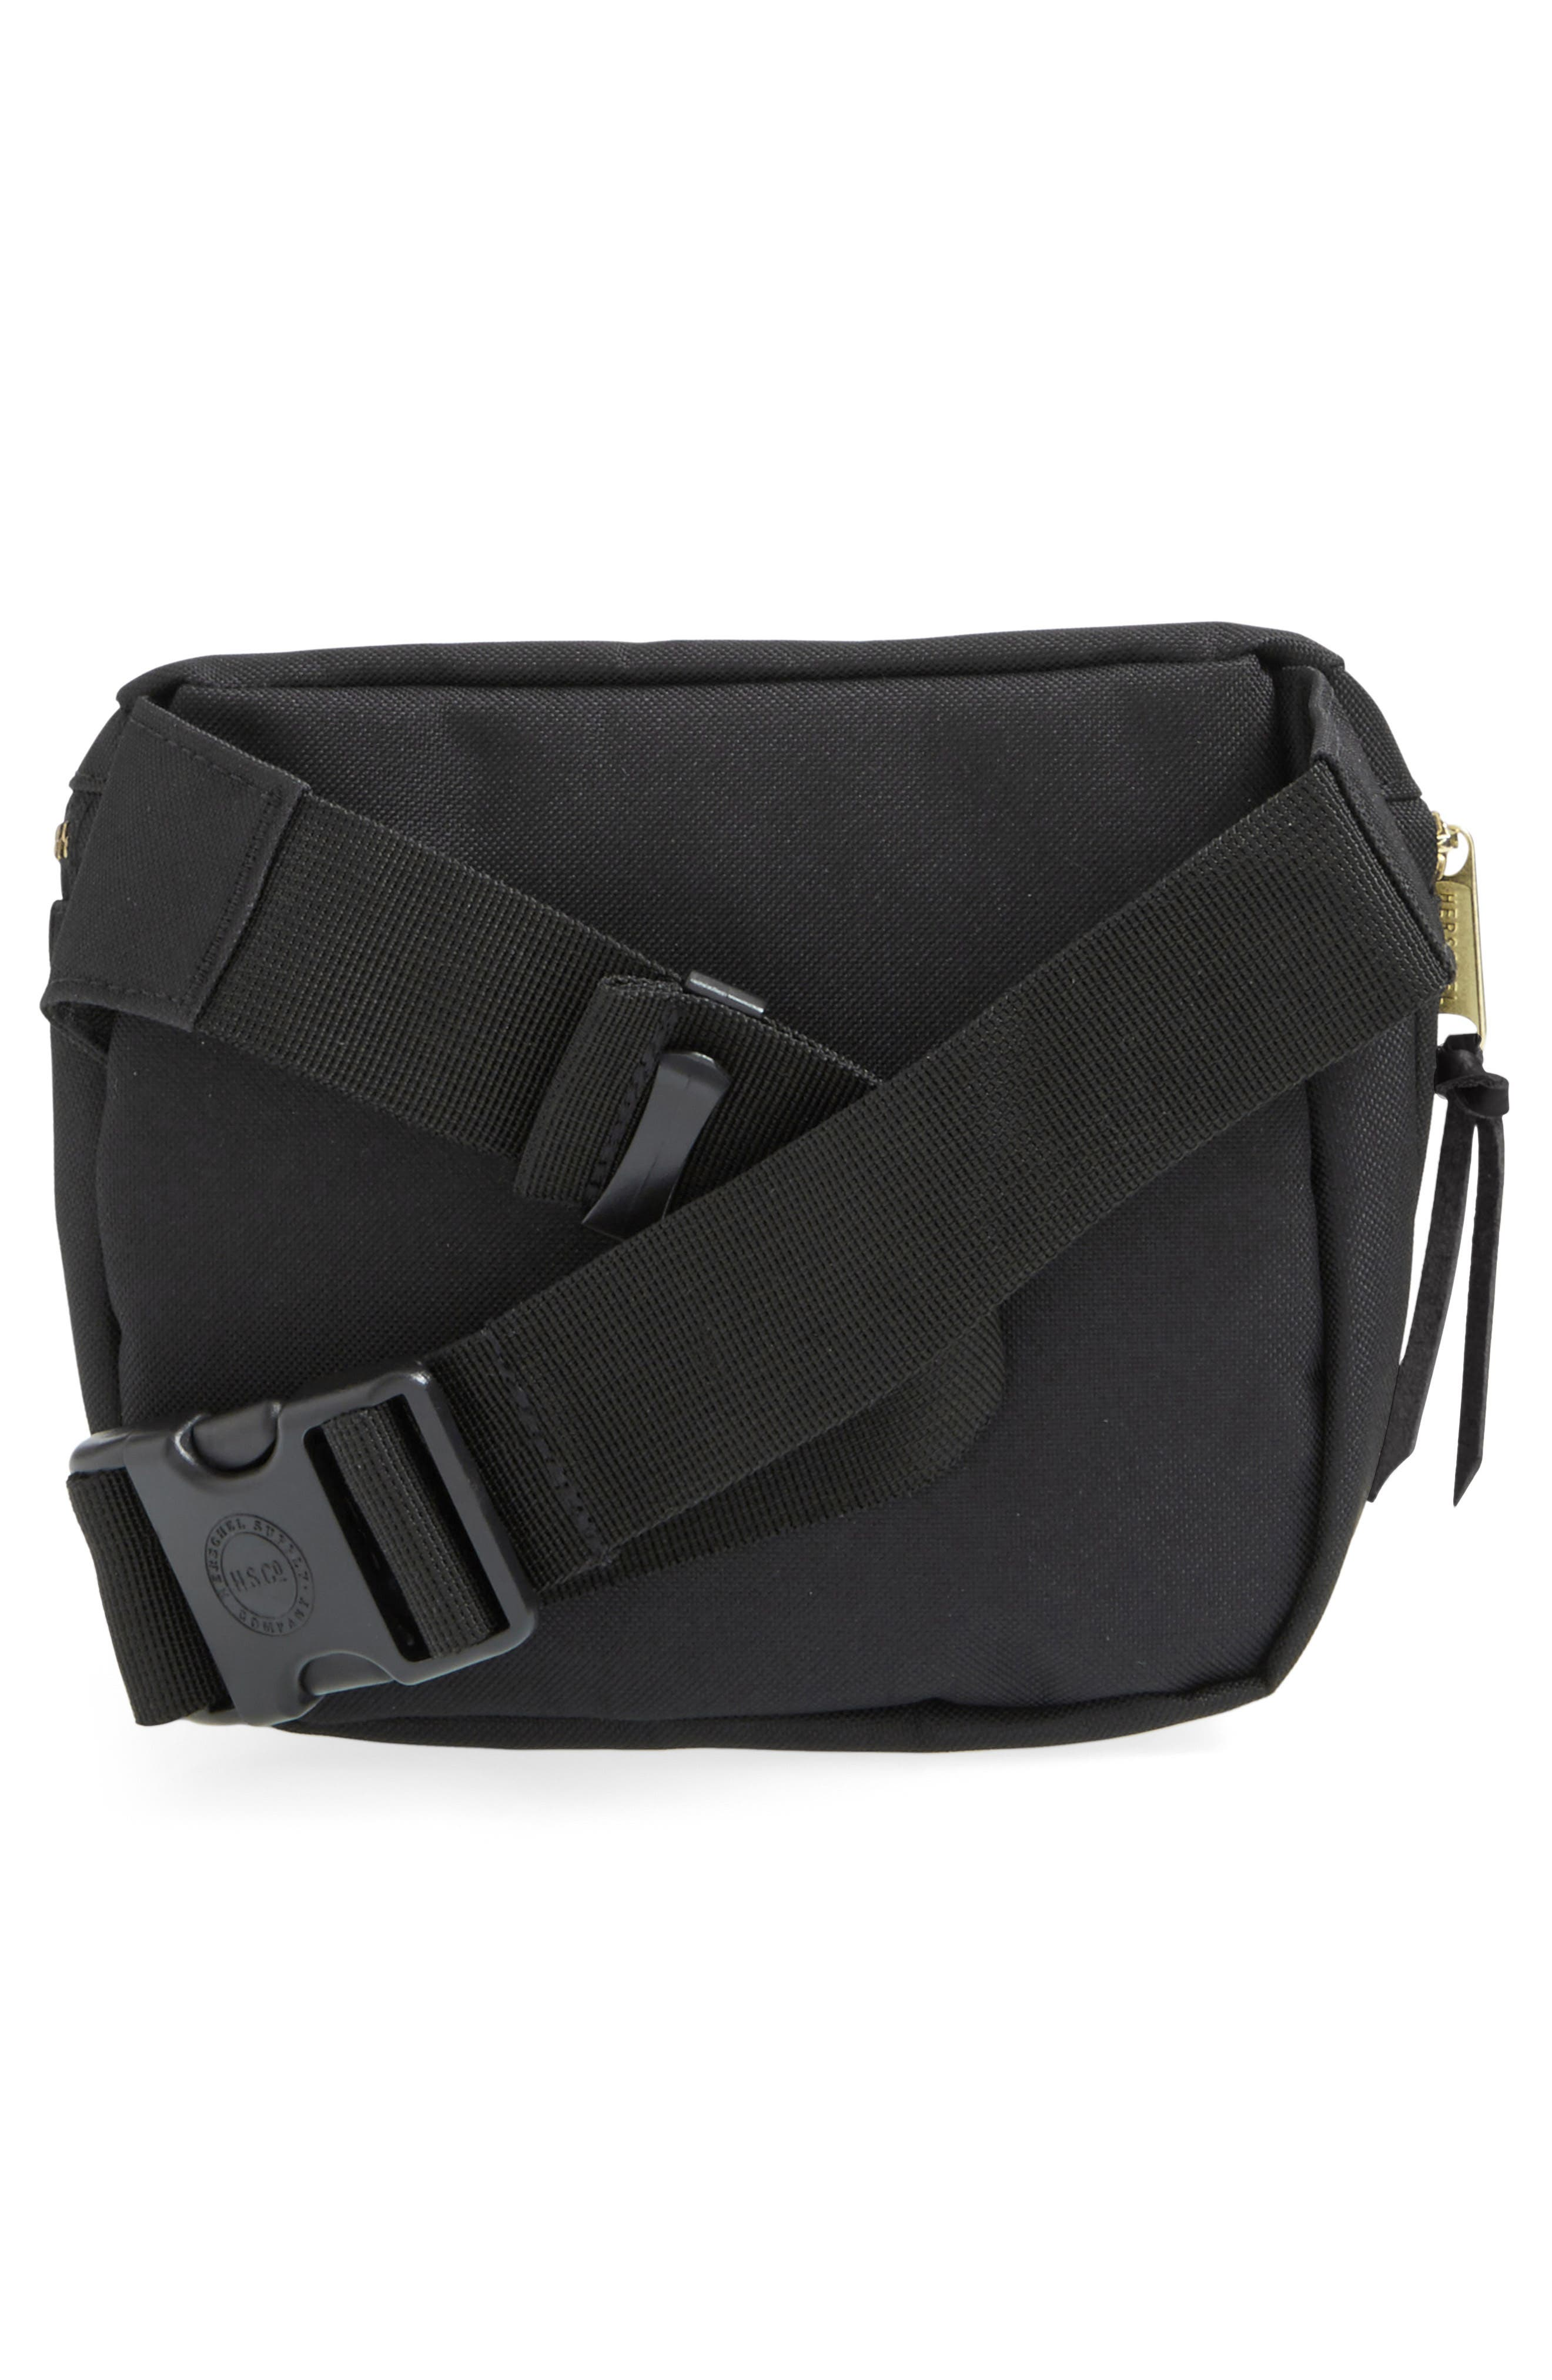 Fifteen Belt Bag,                             Alternate thumbnail 3, color,                             BLACK